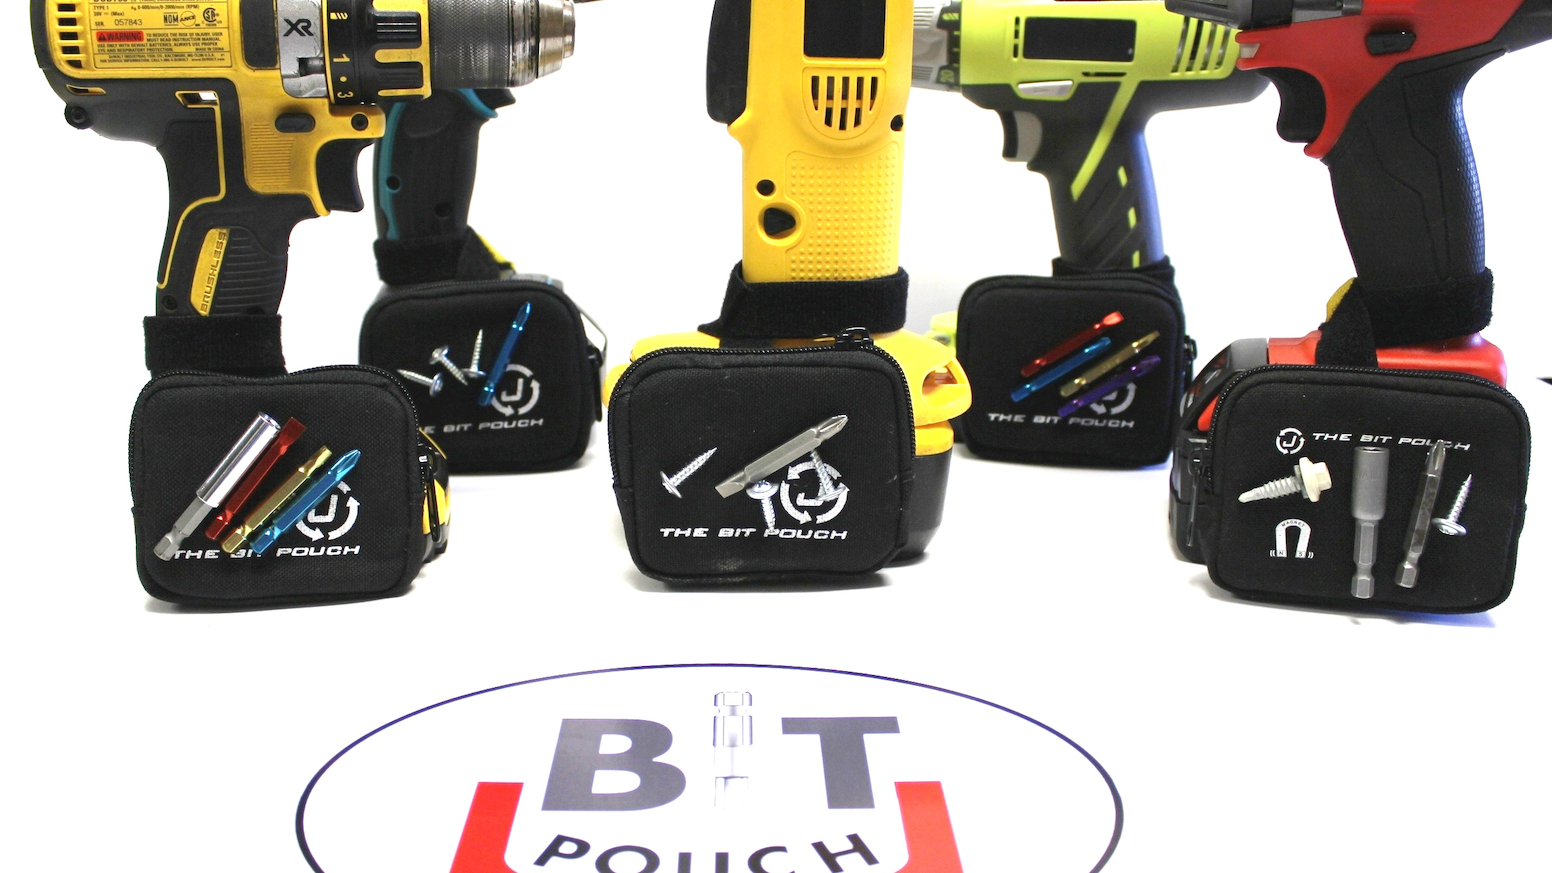 The Bit Pouch is a 'Must Have' Tool Accessory for the Tradesman and Do-It-Yourselfer Alike